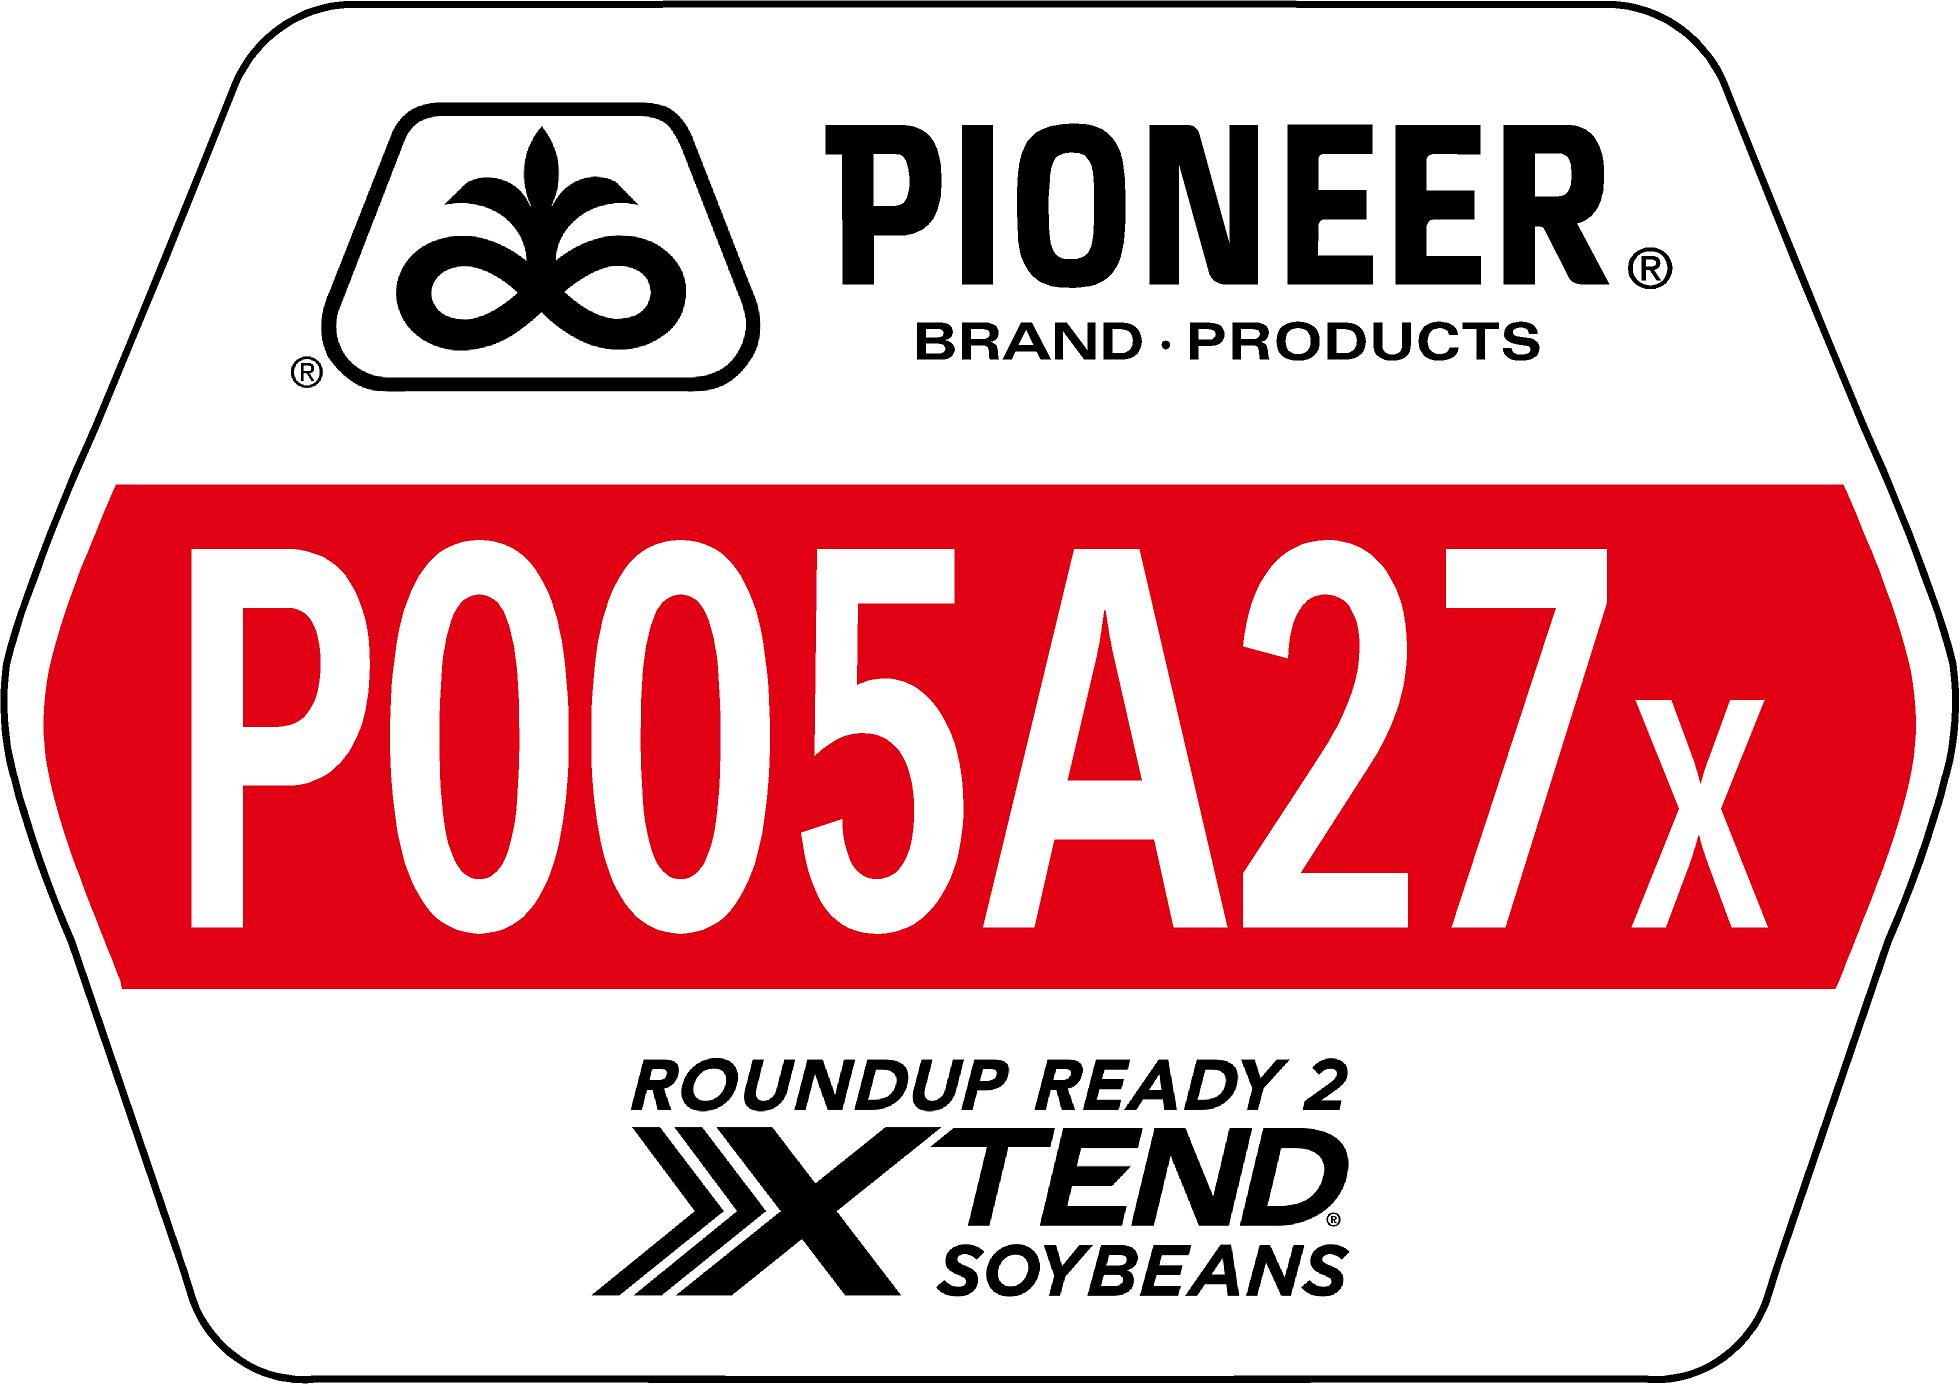 Seed - Pioneer - Soybeans - P005A27X